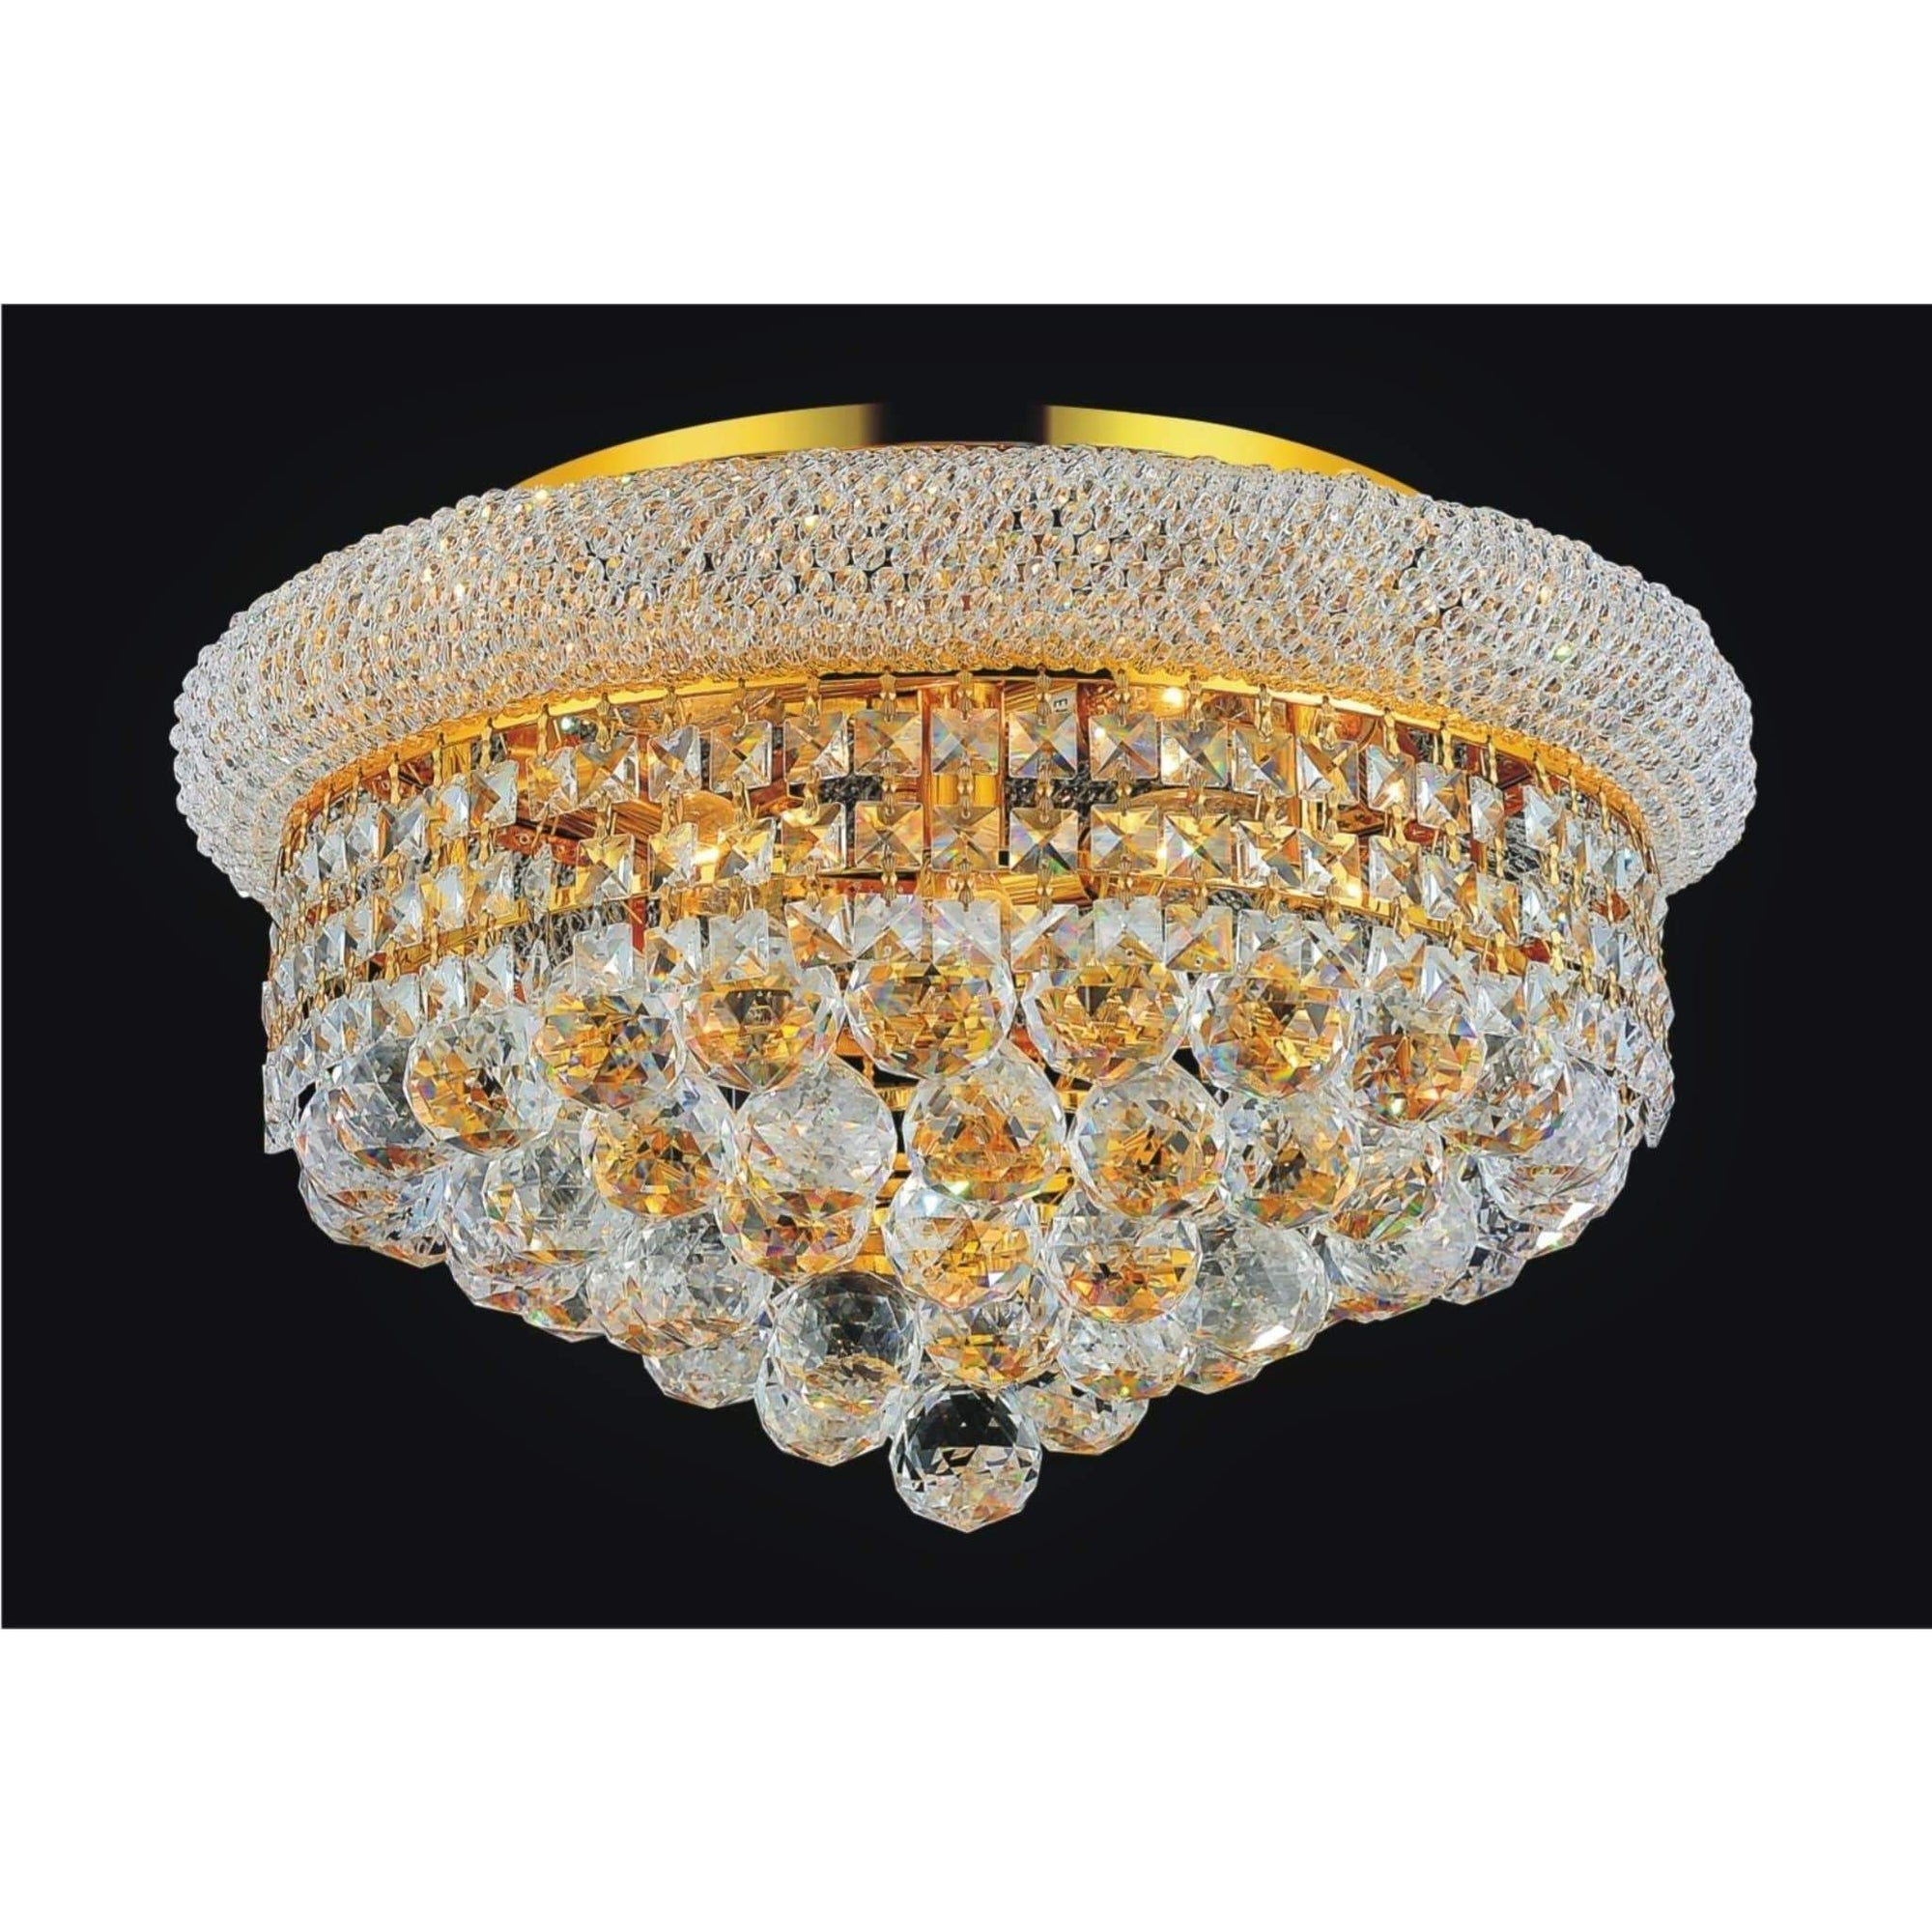 CWI Lighting Flush Mounts Gold / K9 Clear Clear Empire 5 Light Flush Mount with Gold Finish by CWI Lighting 8001C18G